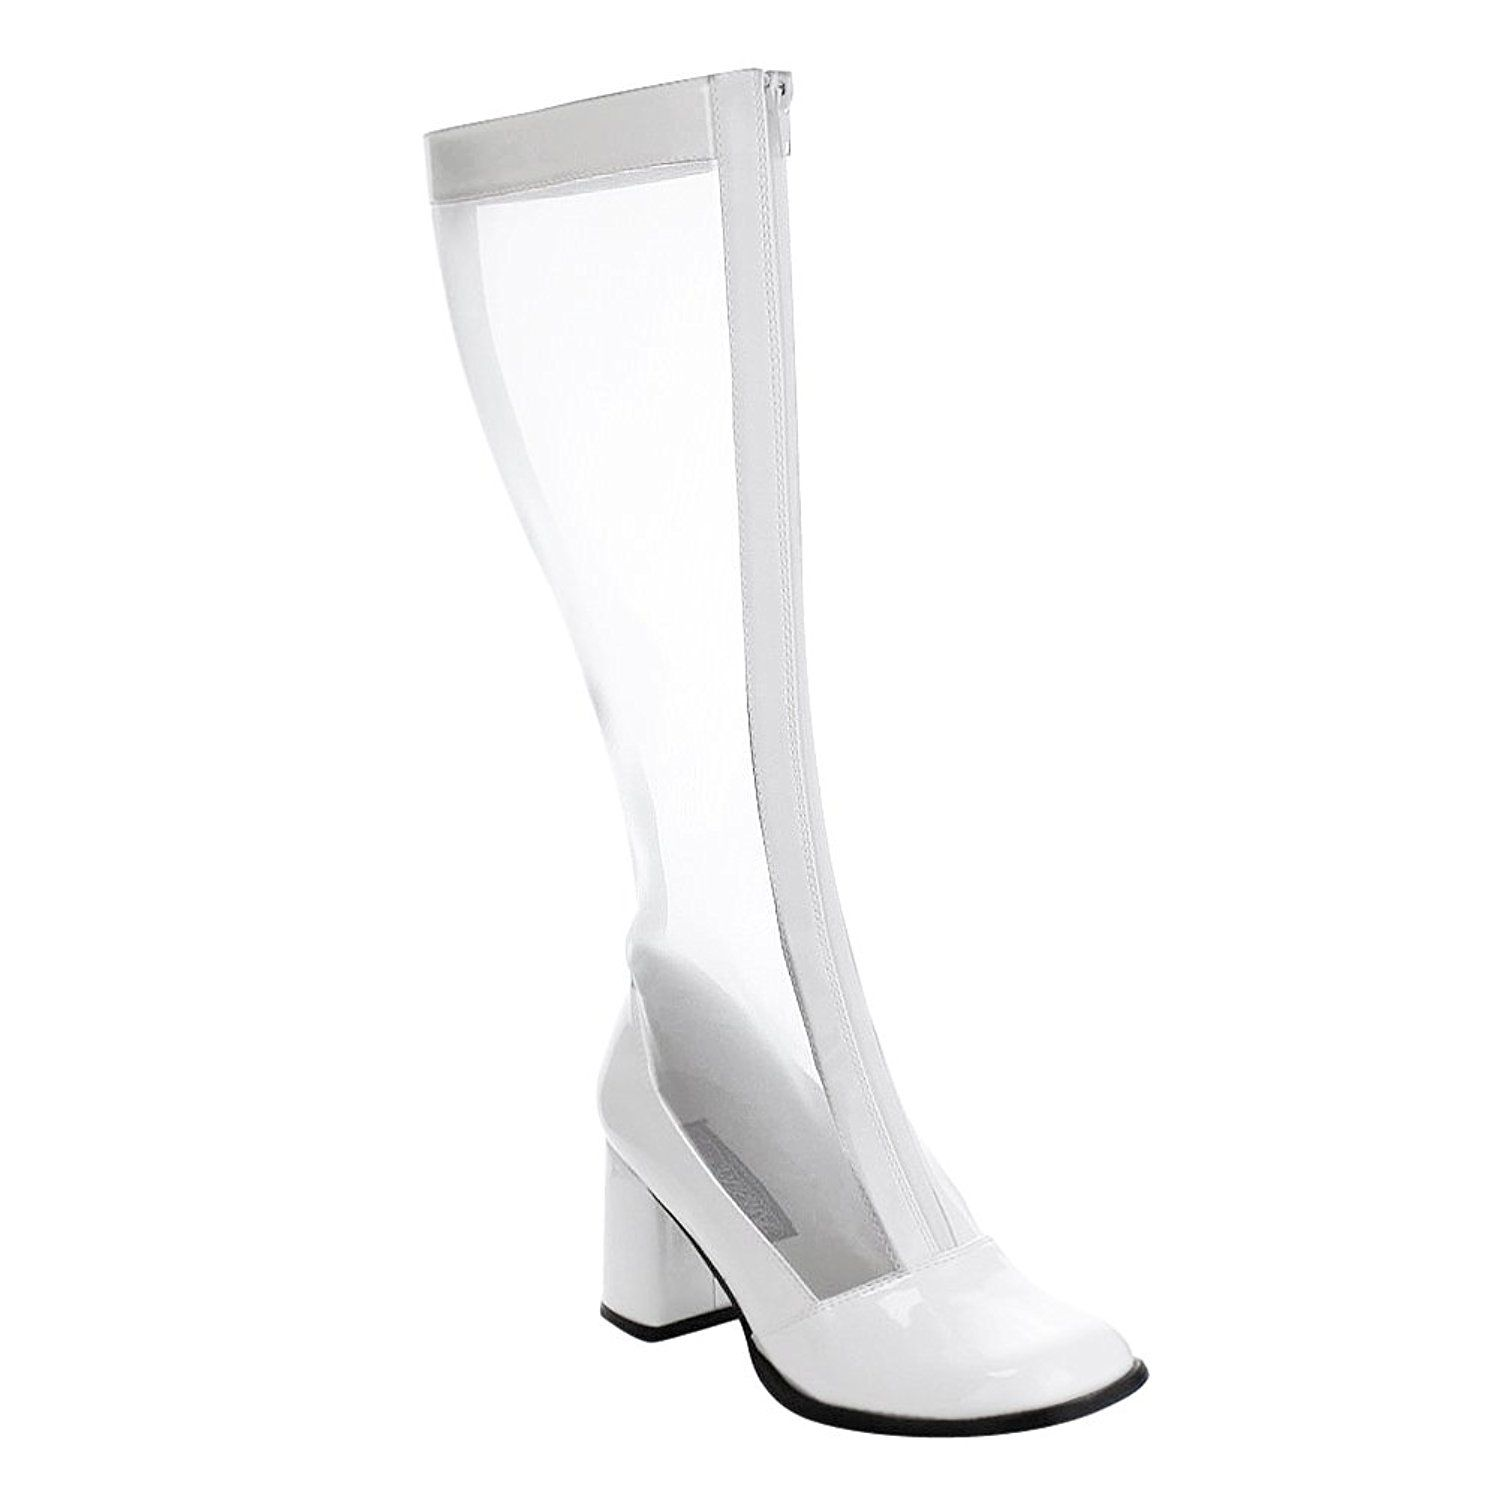 e98dbcb550931 Womens White Knee High Boots Mesh Go Go Boots Zipper Stretch Block 3 ...